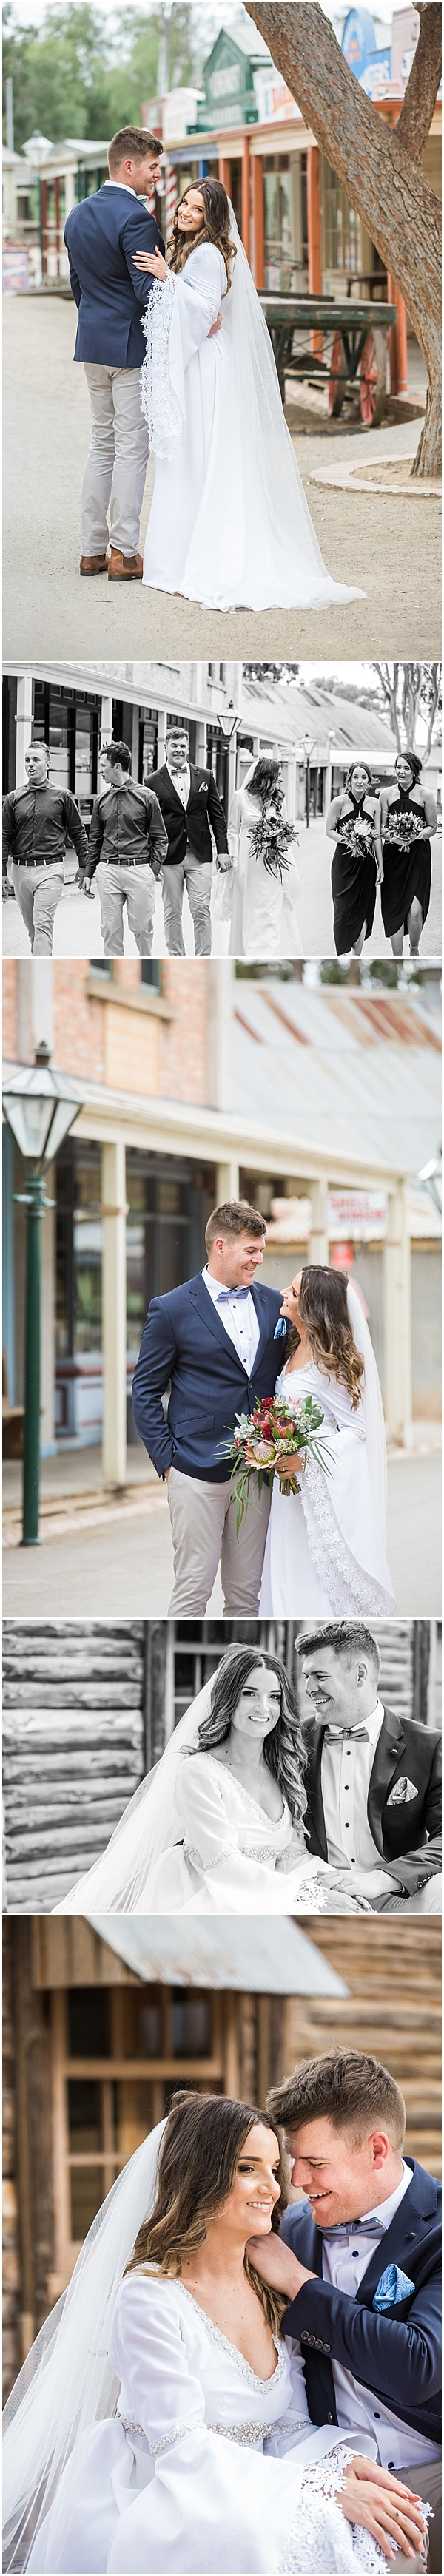 Bendigo Wedding Photographer_0012